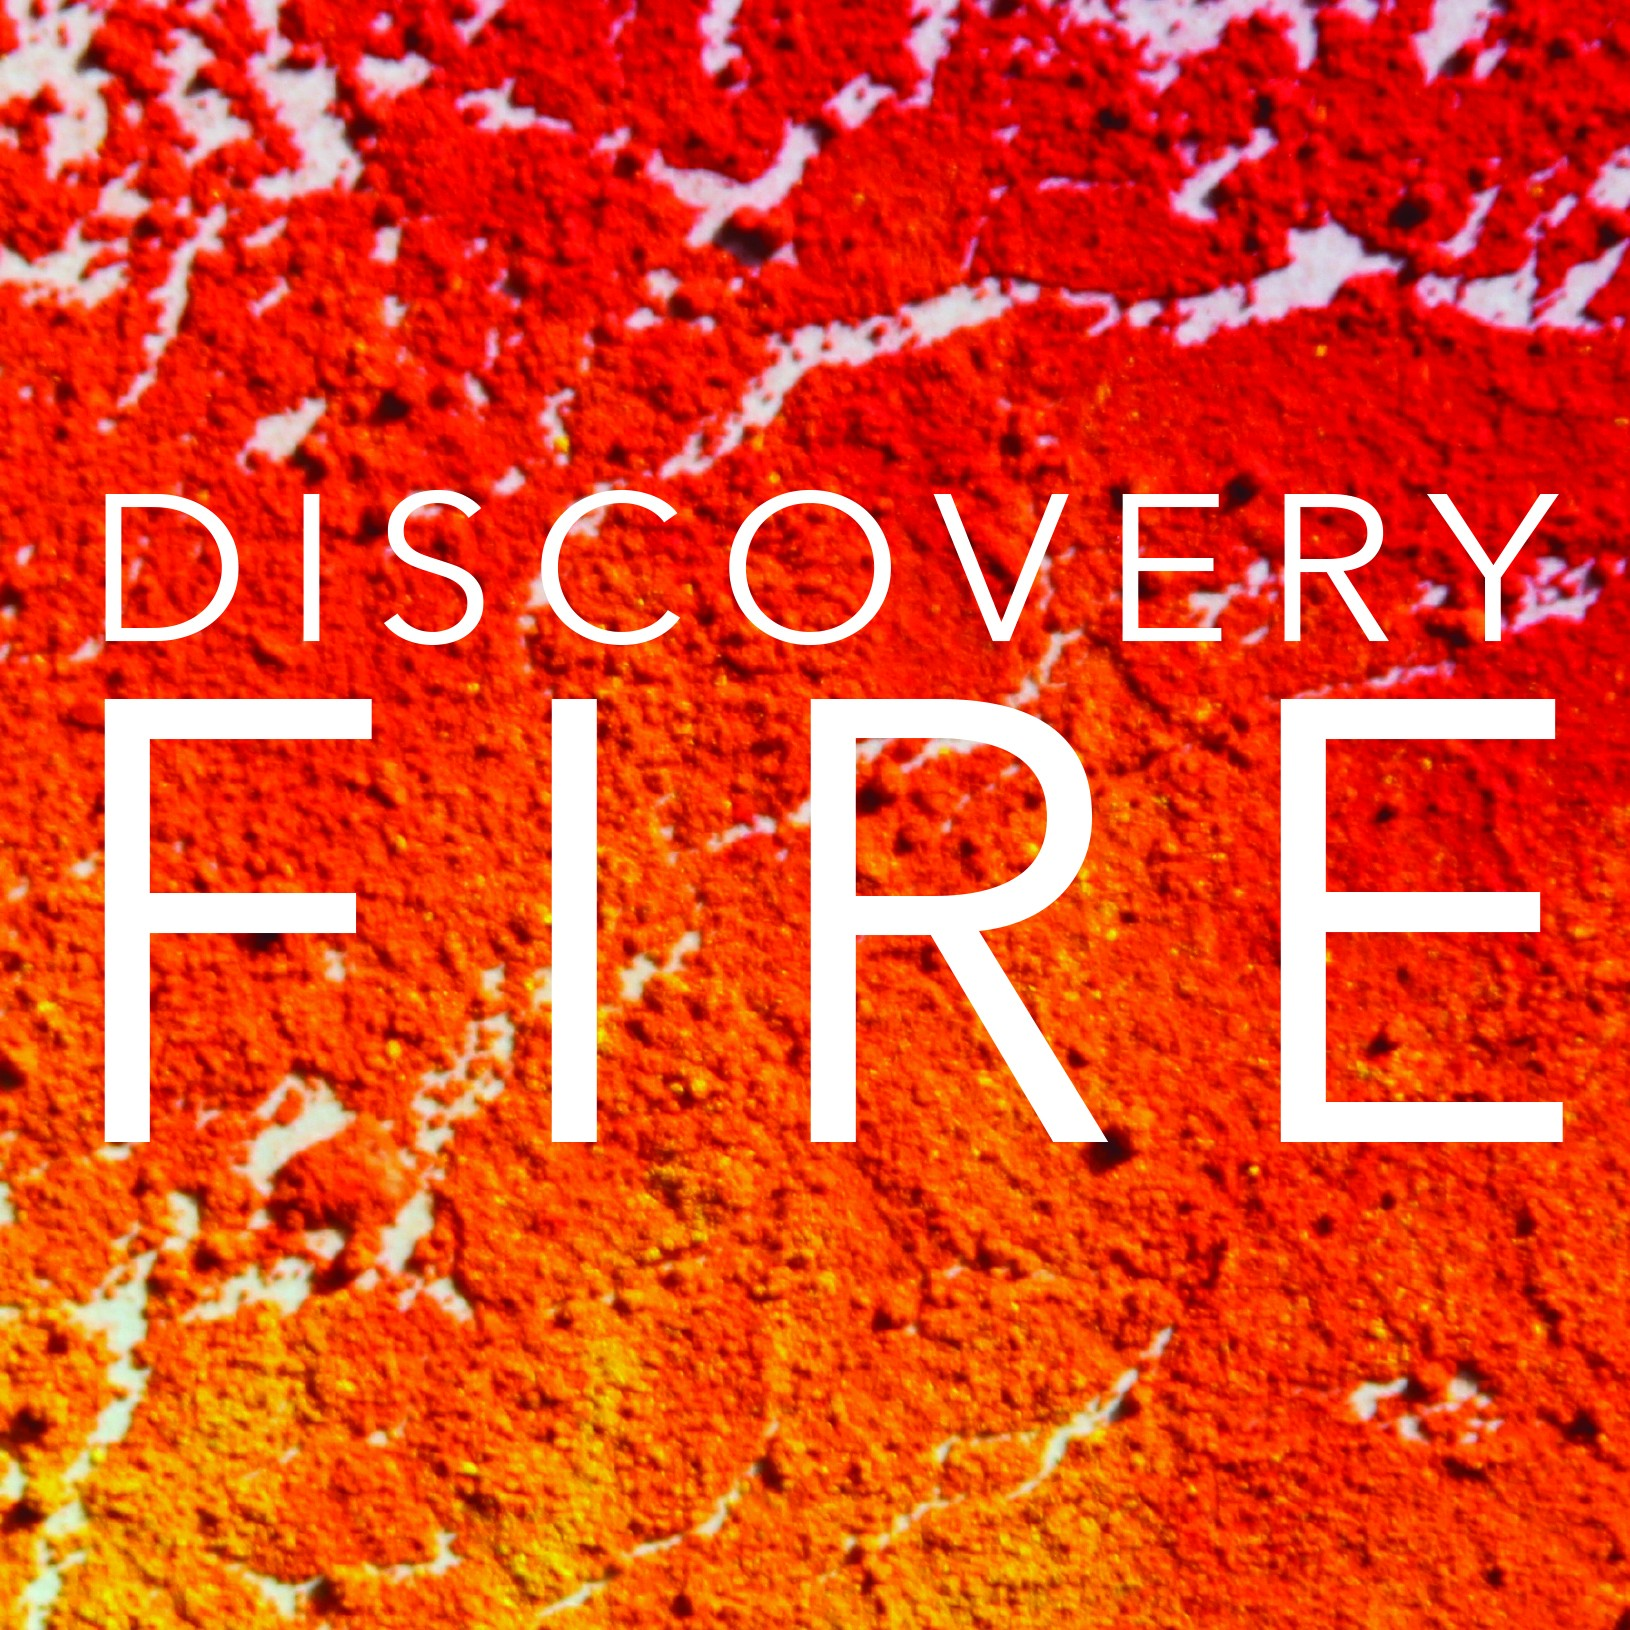 Discovery FIRE Exhibition at the Seymour Art Gallery